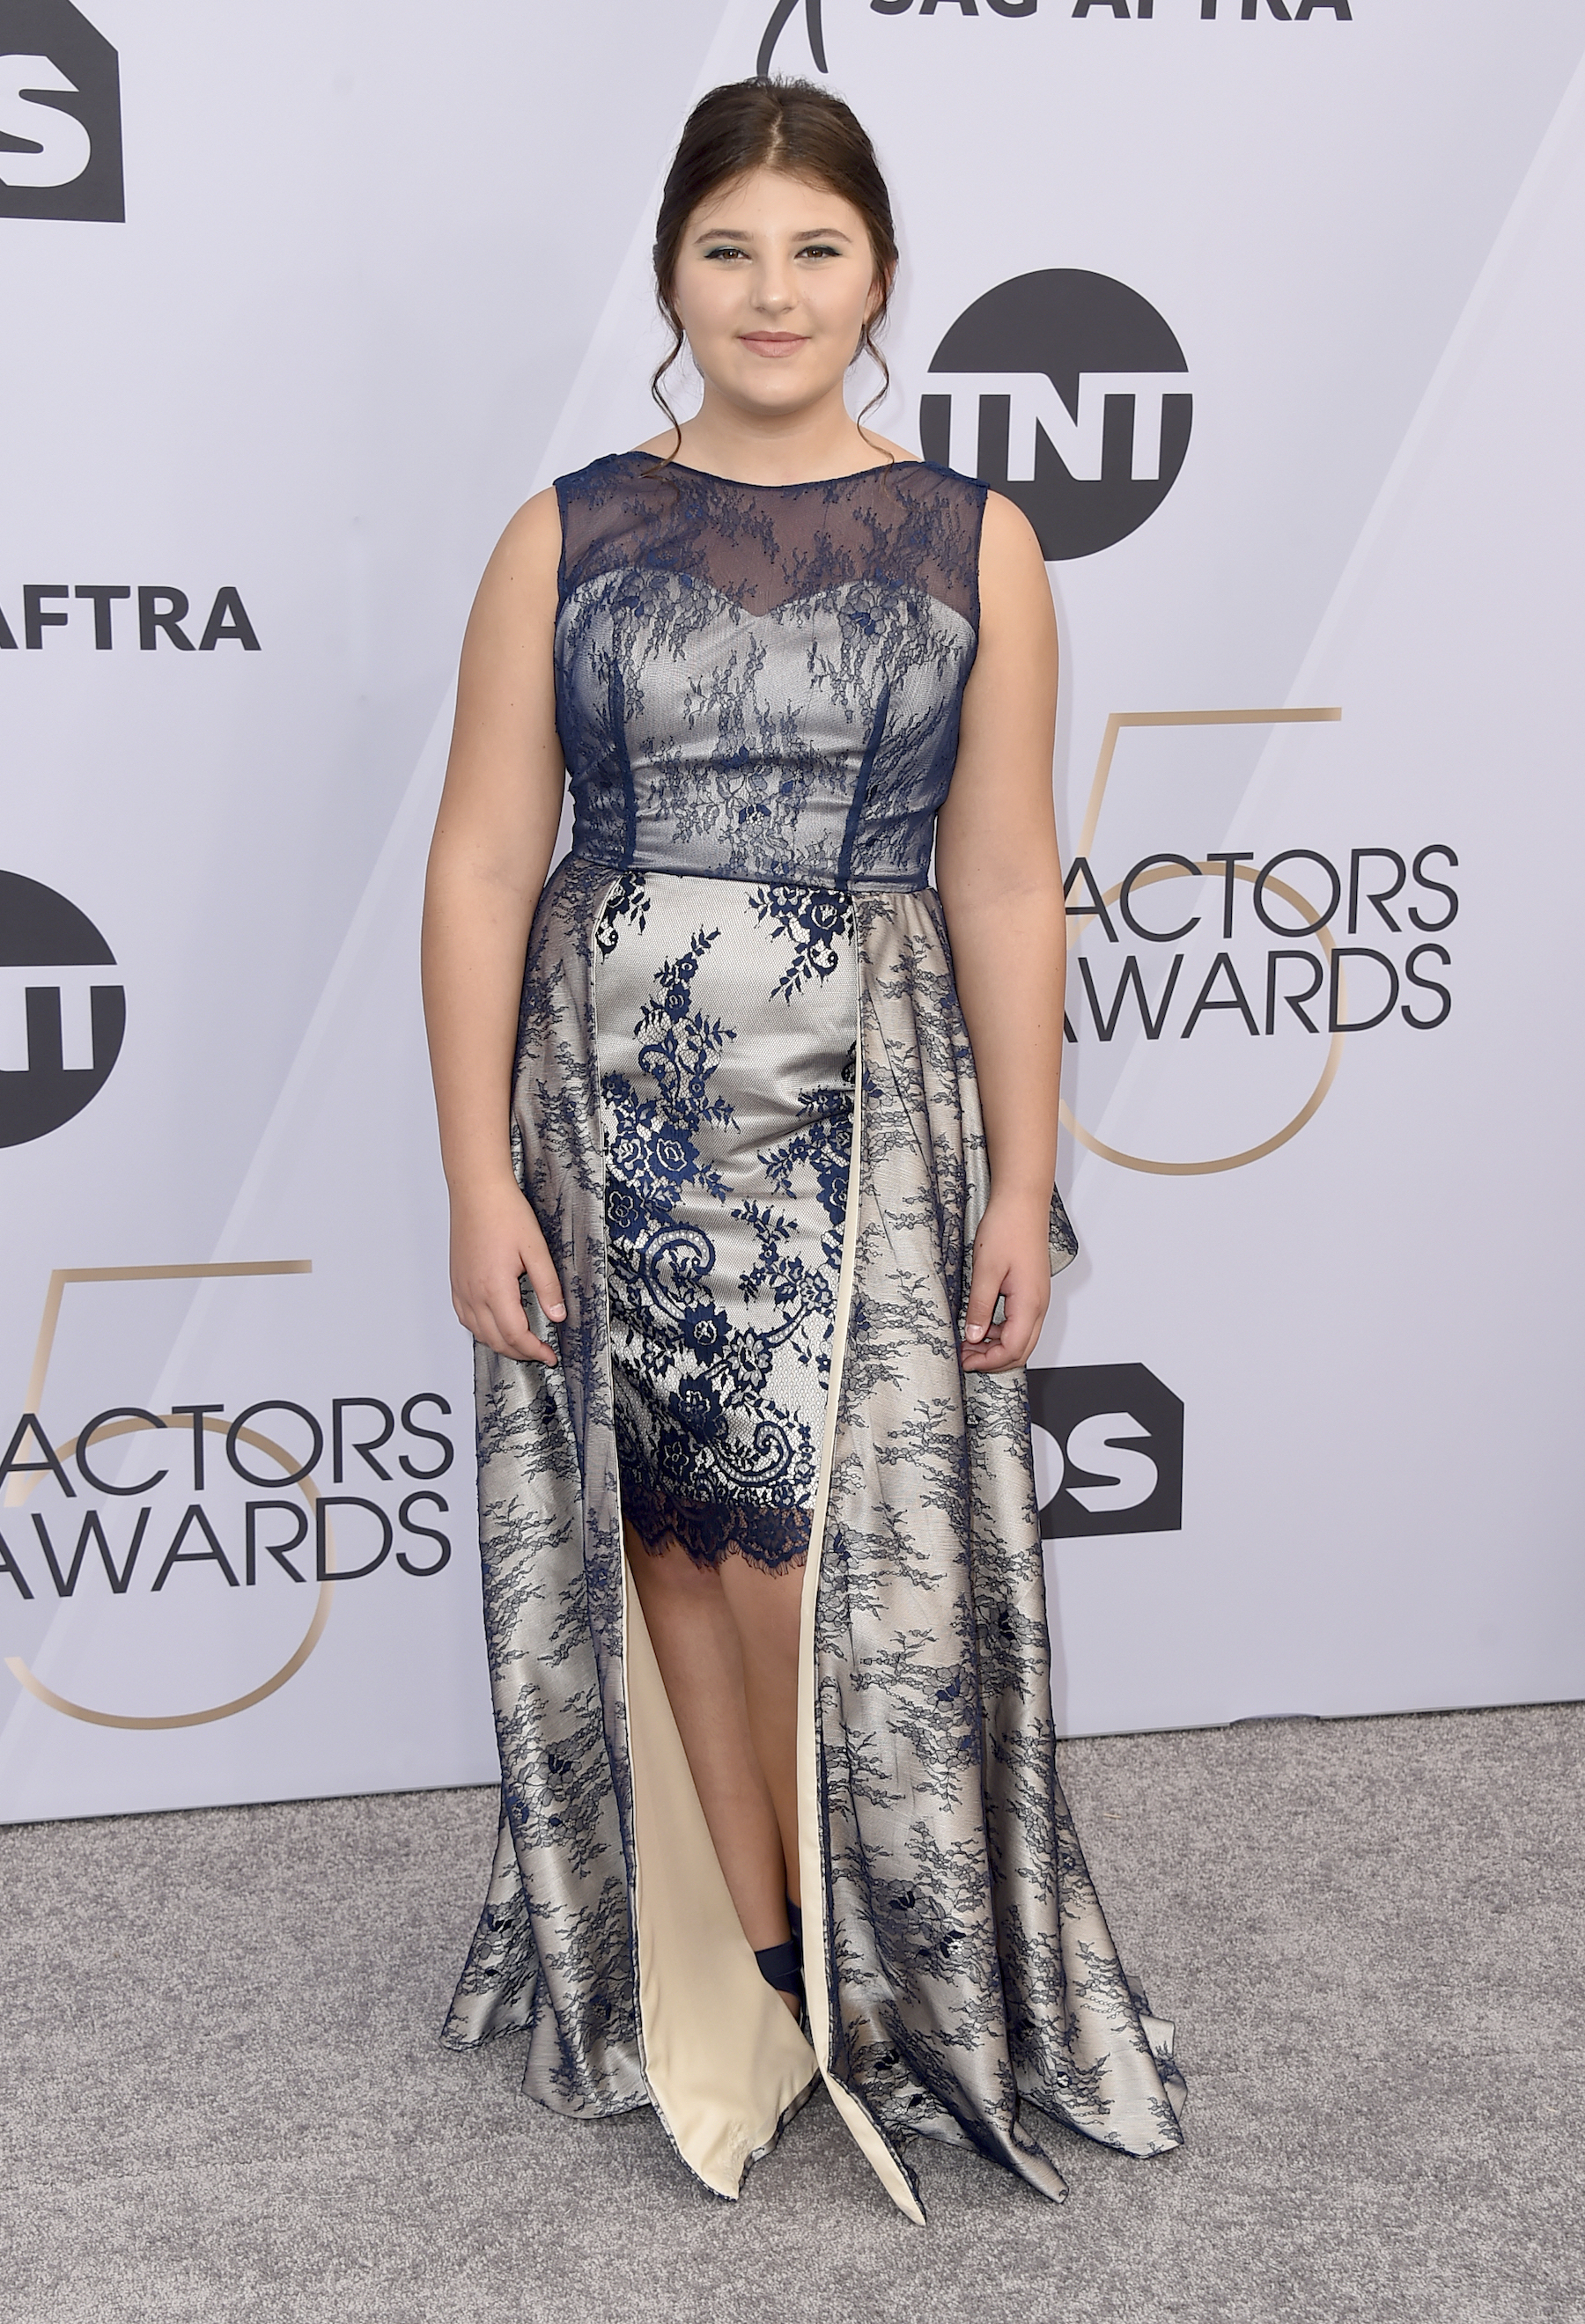 <div class='meta'><div class='origin-logo' data-origin='AP'></div><span class='caption-text' data-credit='Jordan Strauss/Invision/AP'>Mackenzie Hancsicsak arrives at the 25th annual Screen Actors Guild Awards at the Shrine Auditorium & Expo Hall on Sunday, Jan. 27, 2019, in Los Angeles.</span></div>